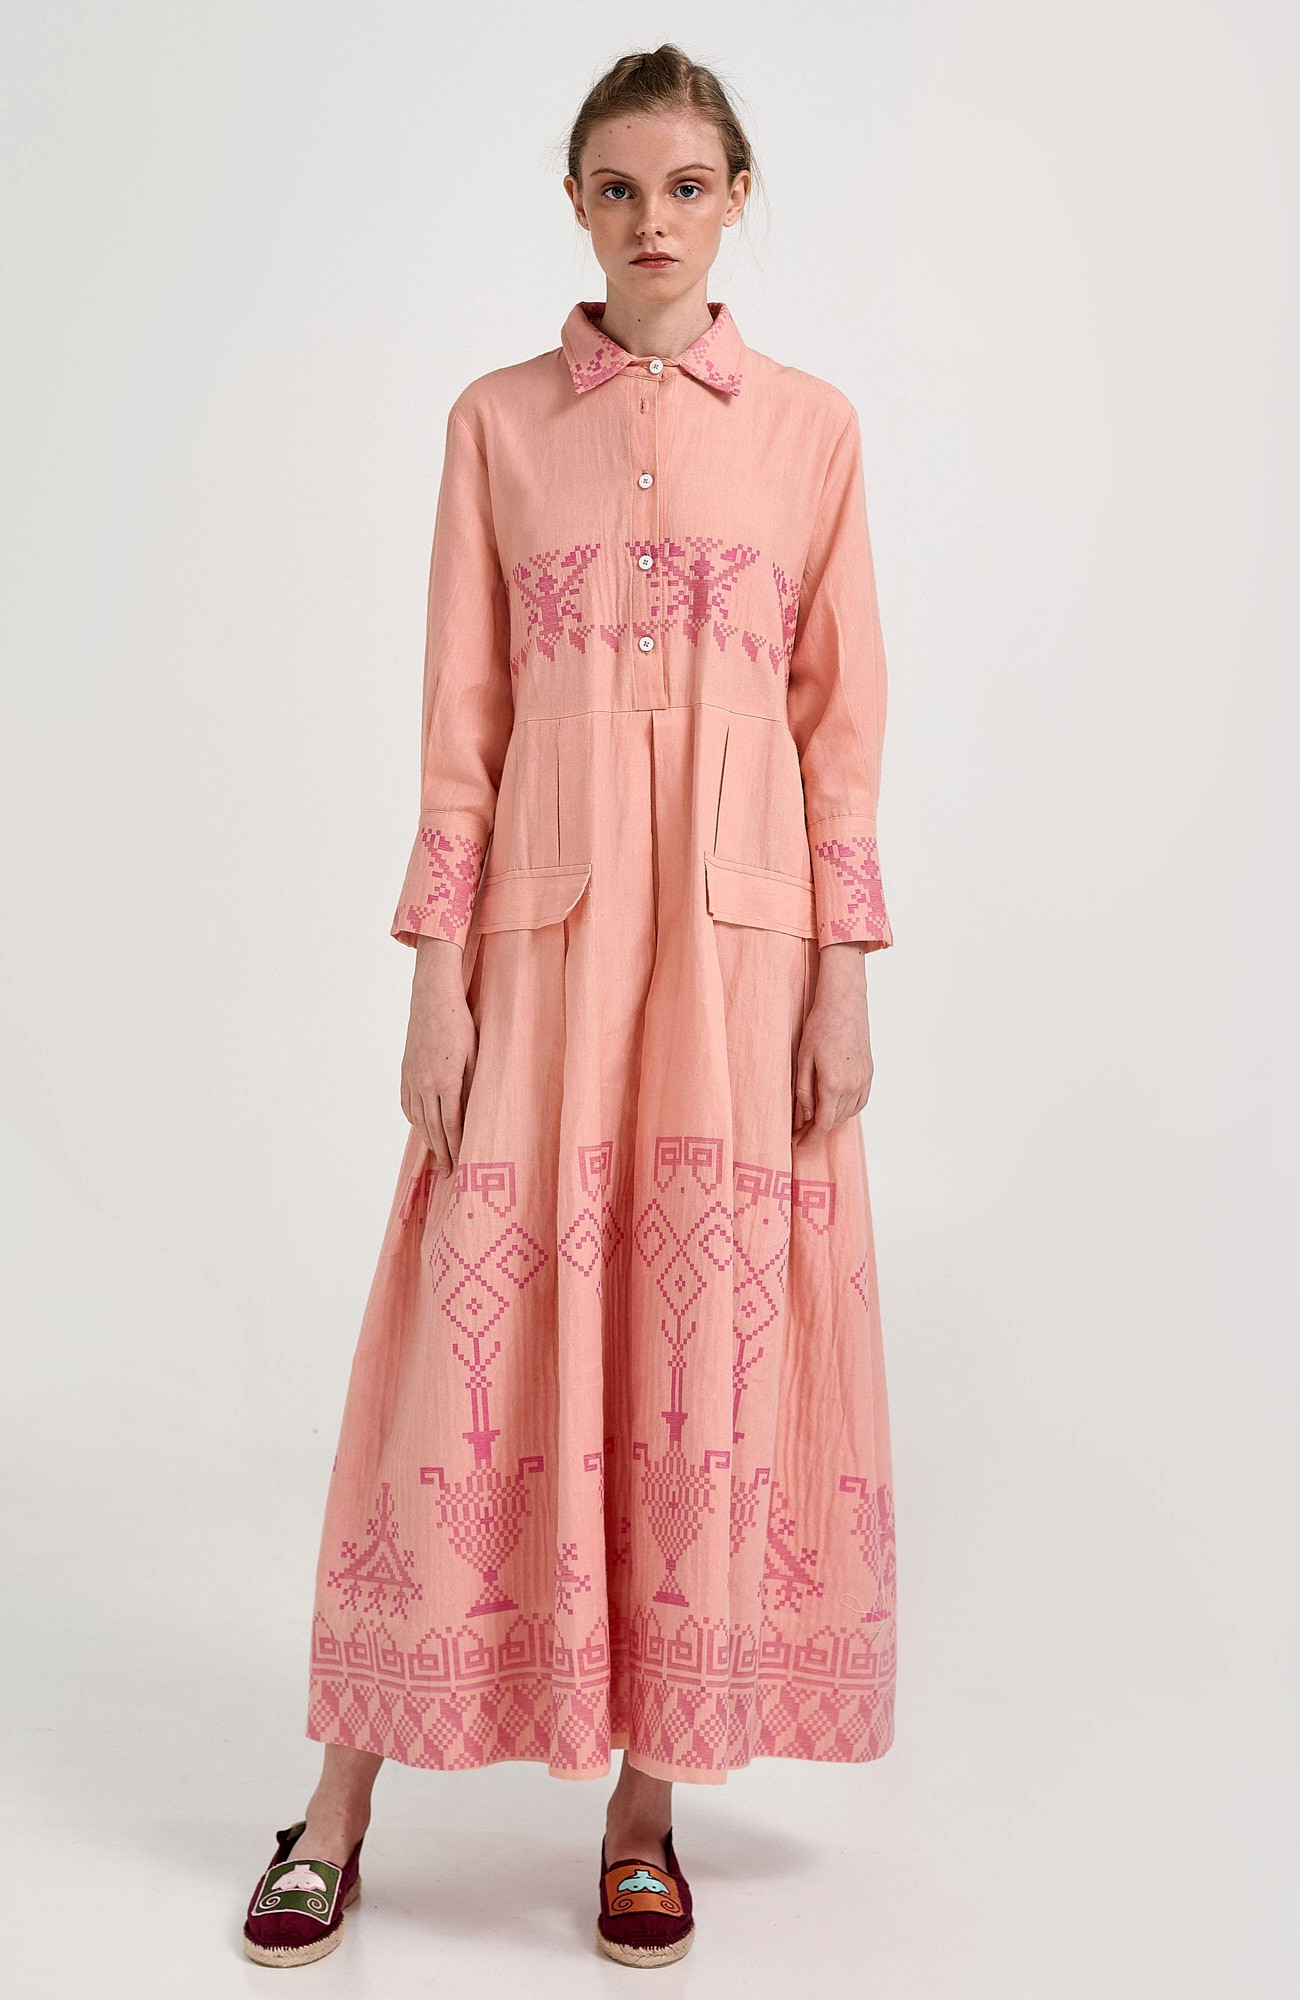 ERGON MYKONOS Avra Dress Pink